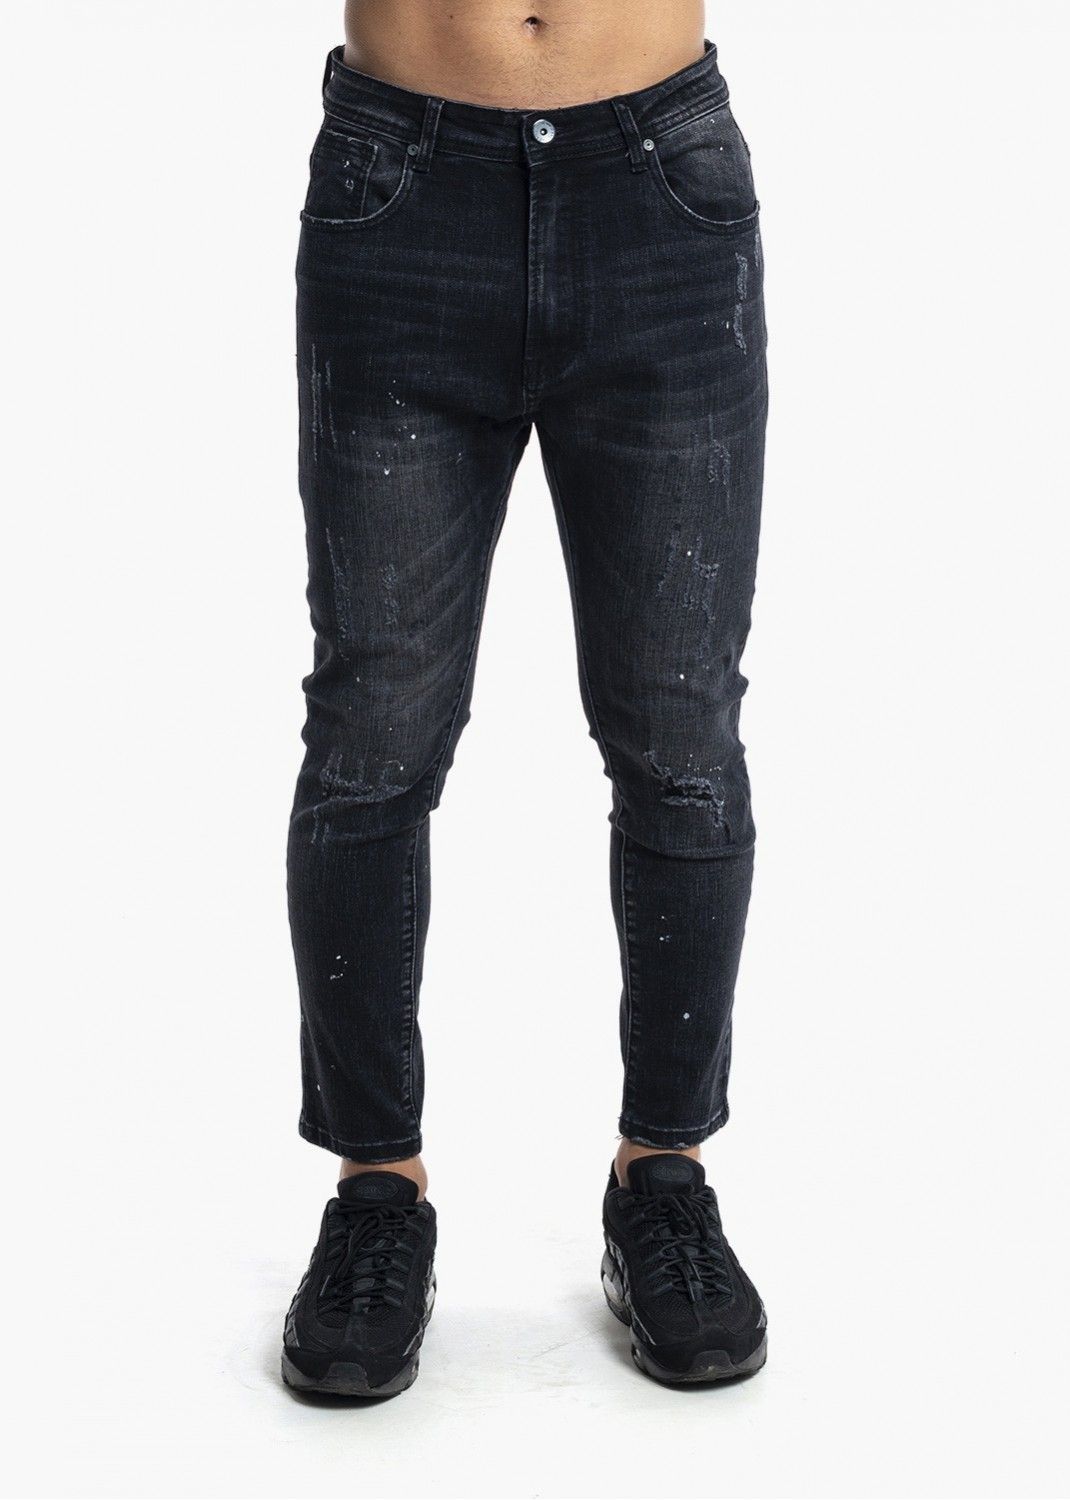 Jeans Skinny Fit Black Denim JK-119K